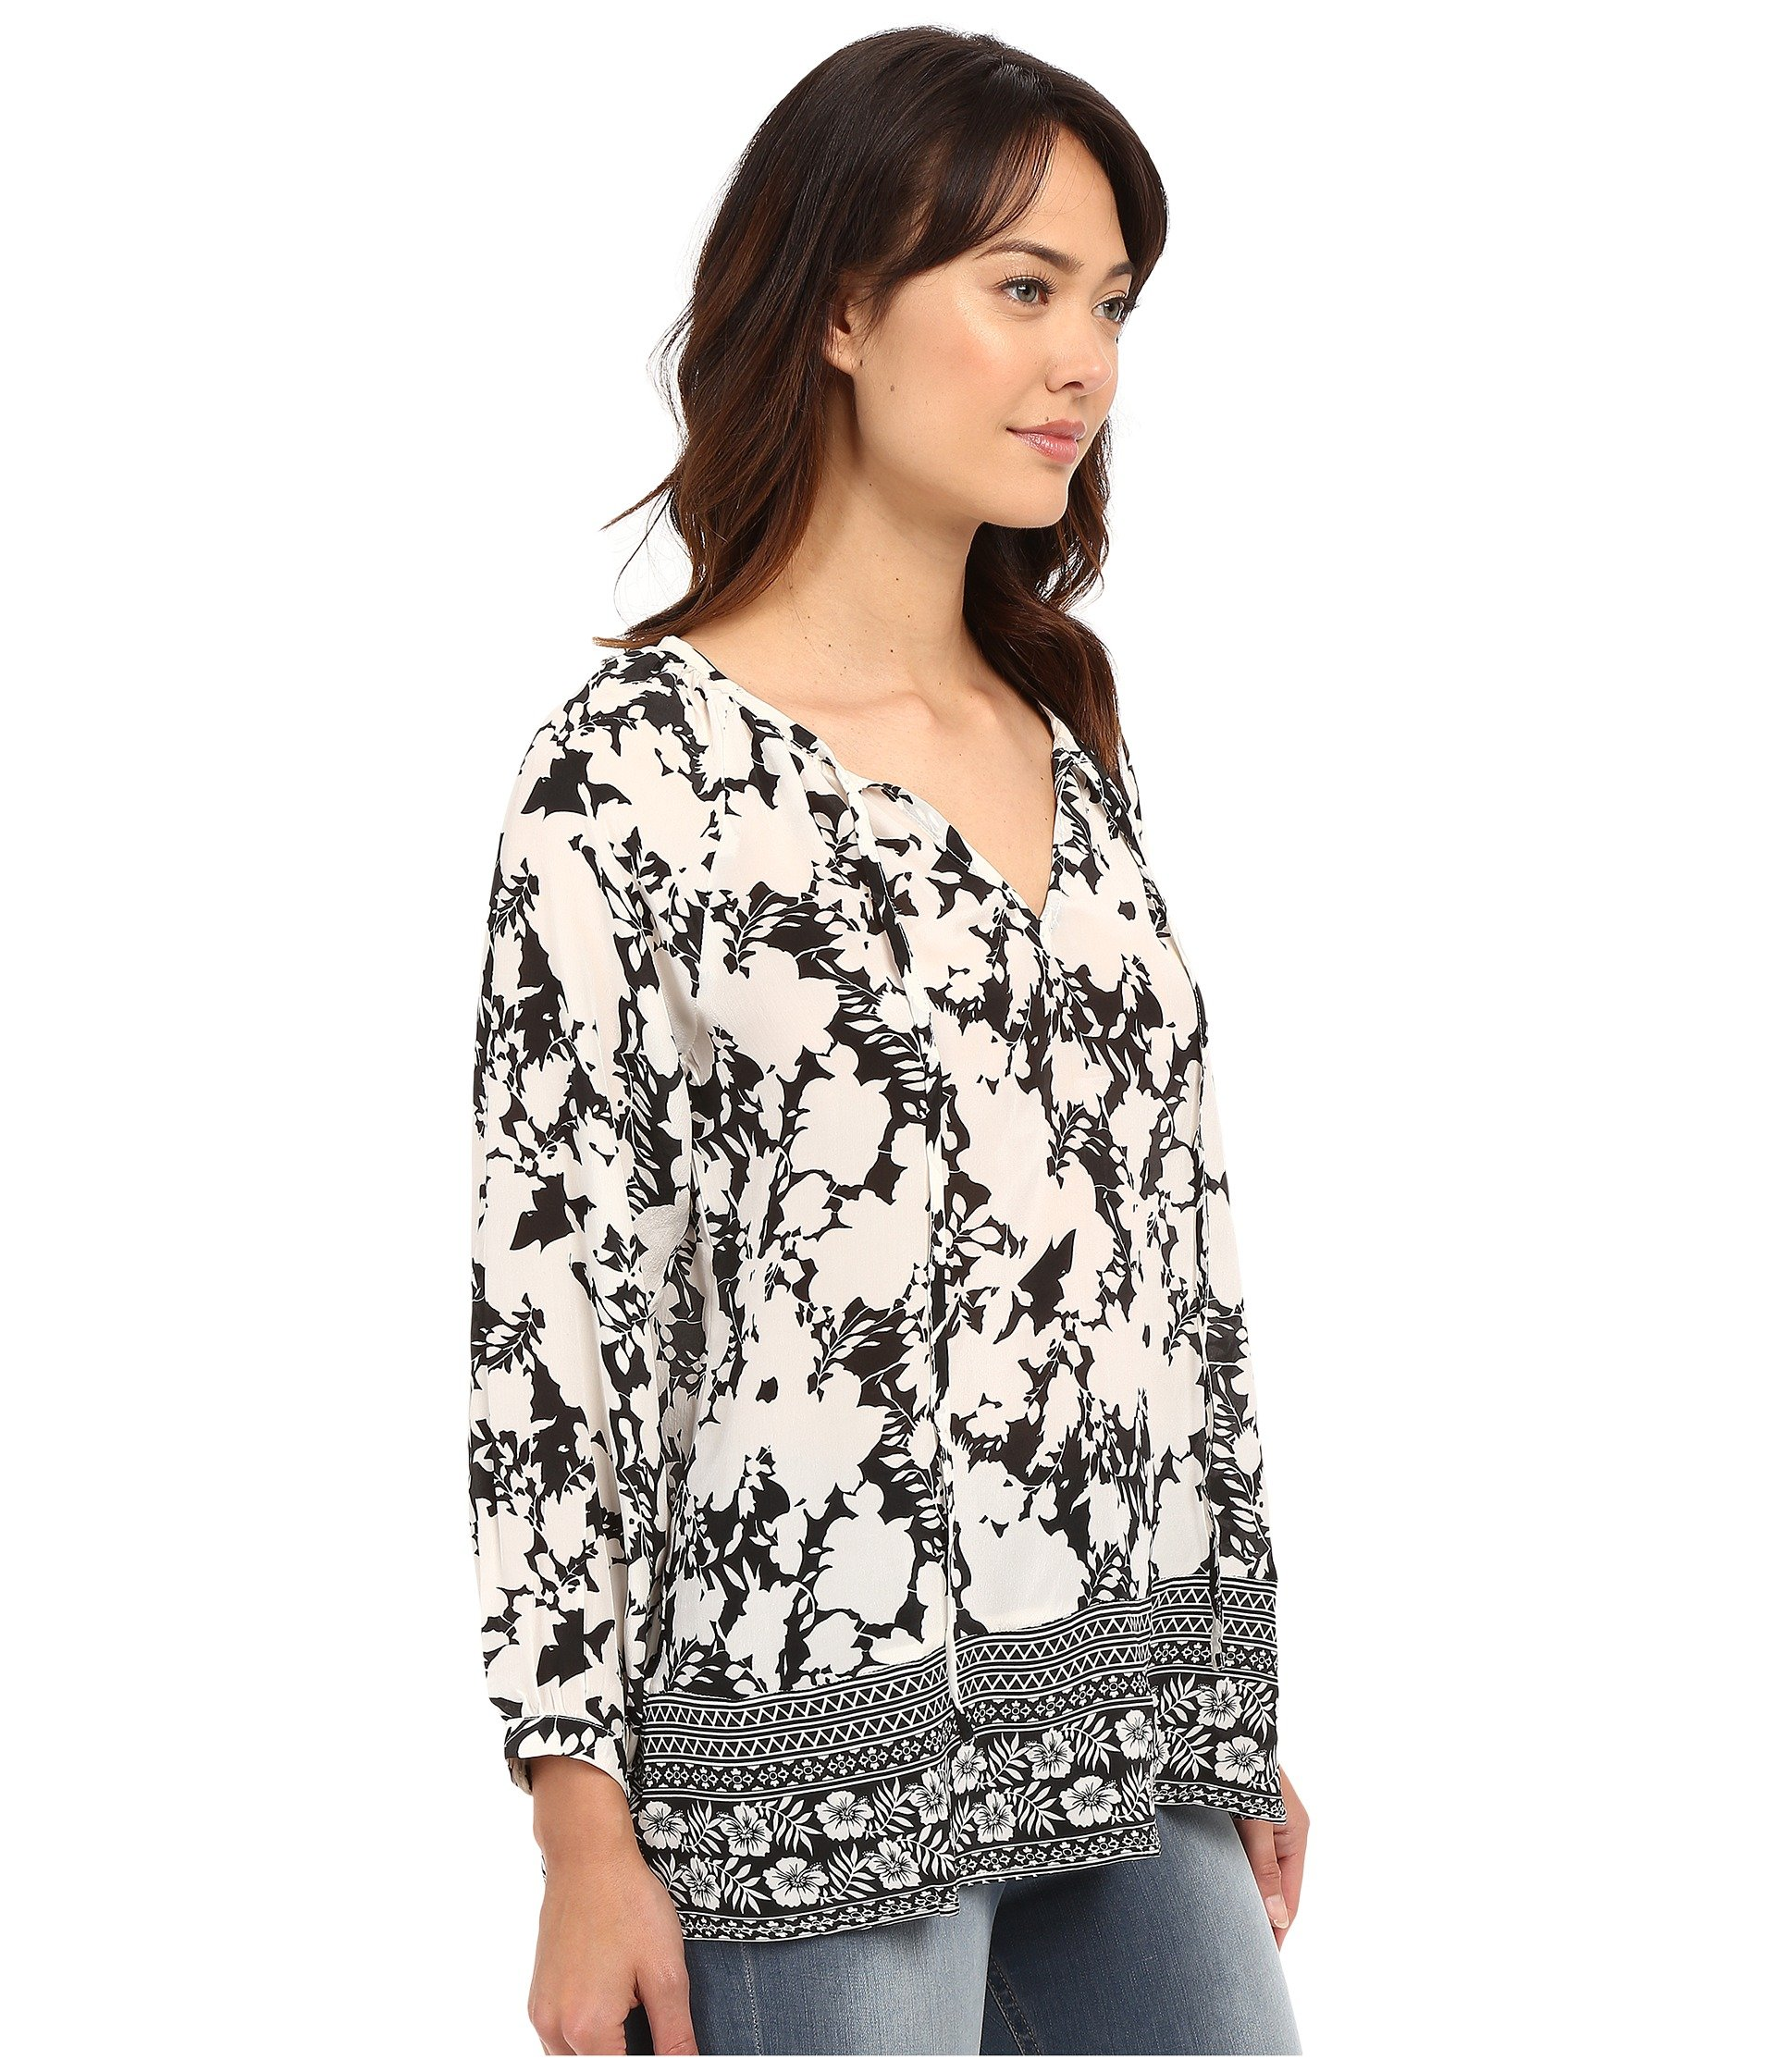 Tolani Megan Long Sleeve Blouse - 625.5KB